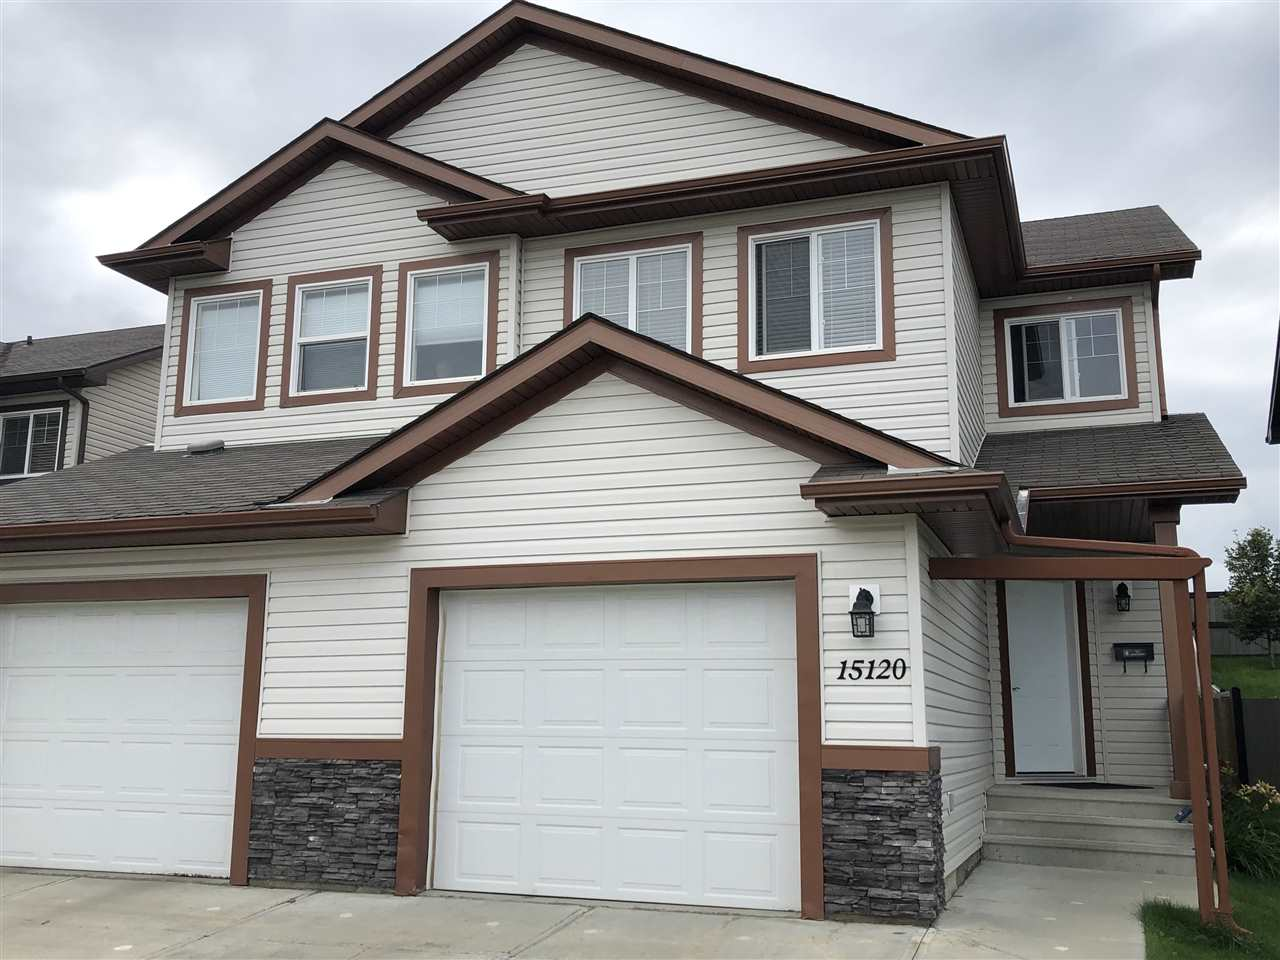 MLS® listing #E4169187 for sale located at 15120 33 Street